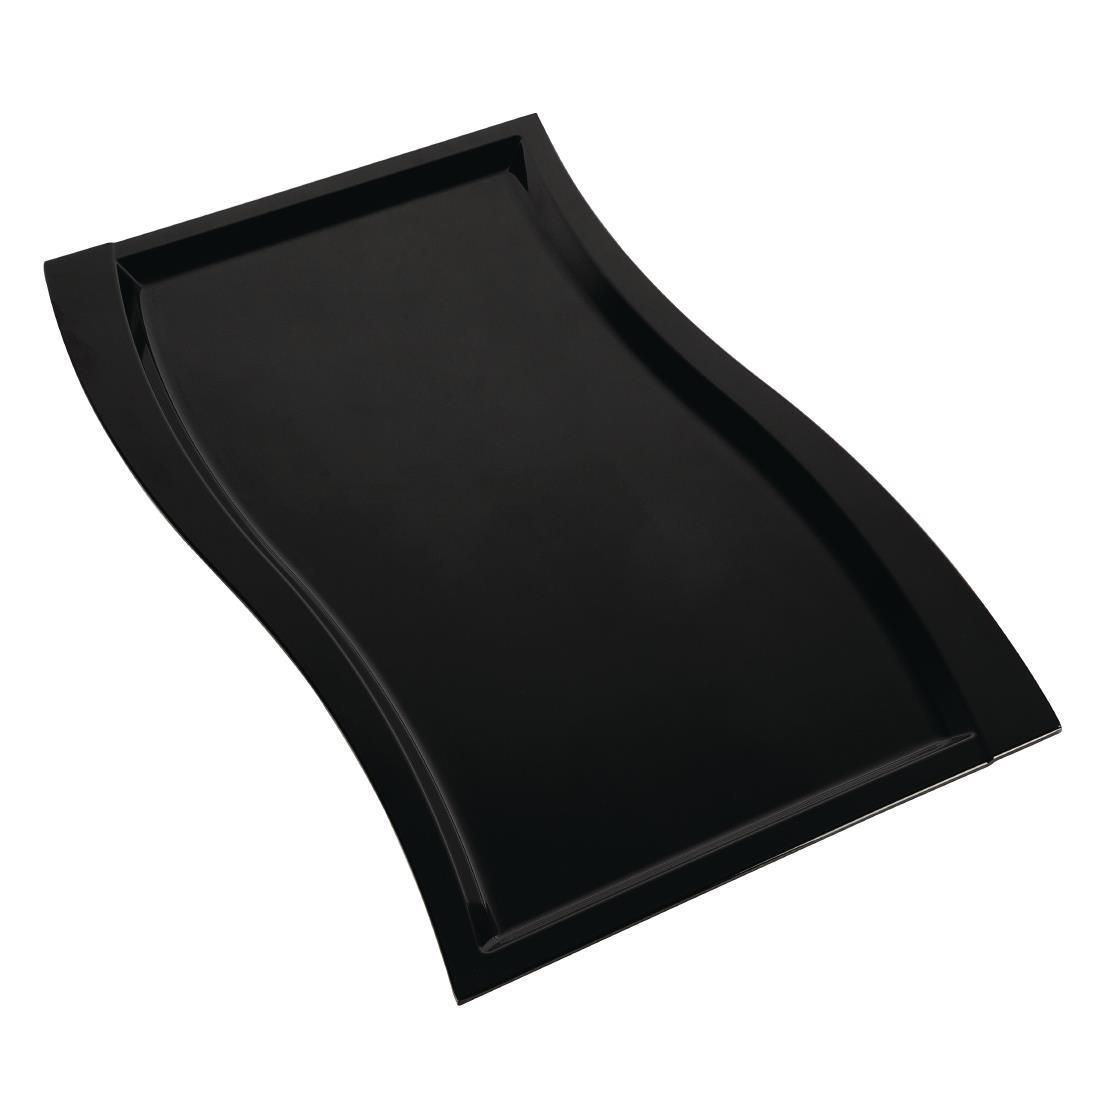 APS Wave Melamine Platter Black GN 1/1 - Each - GK828